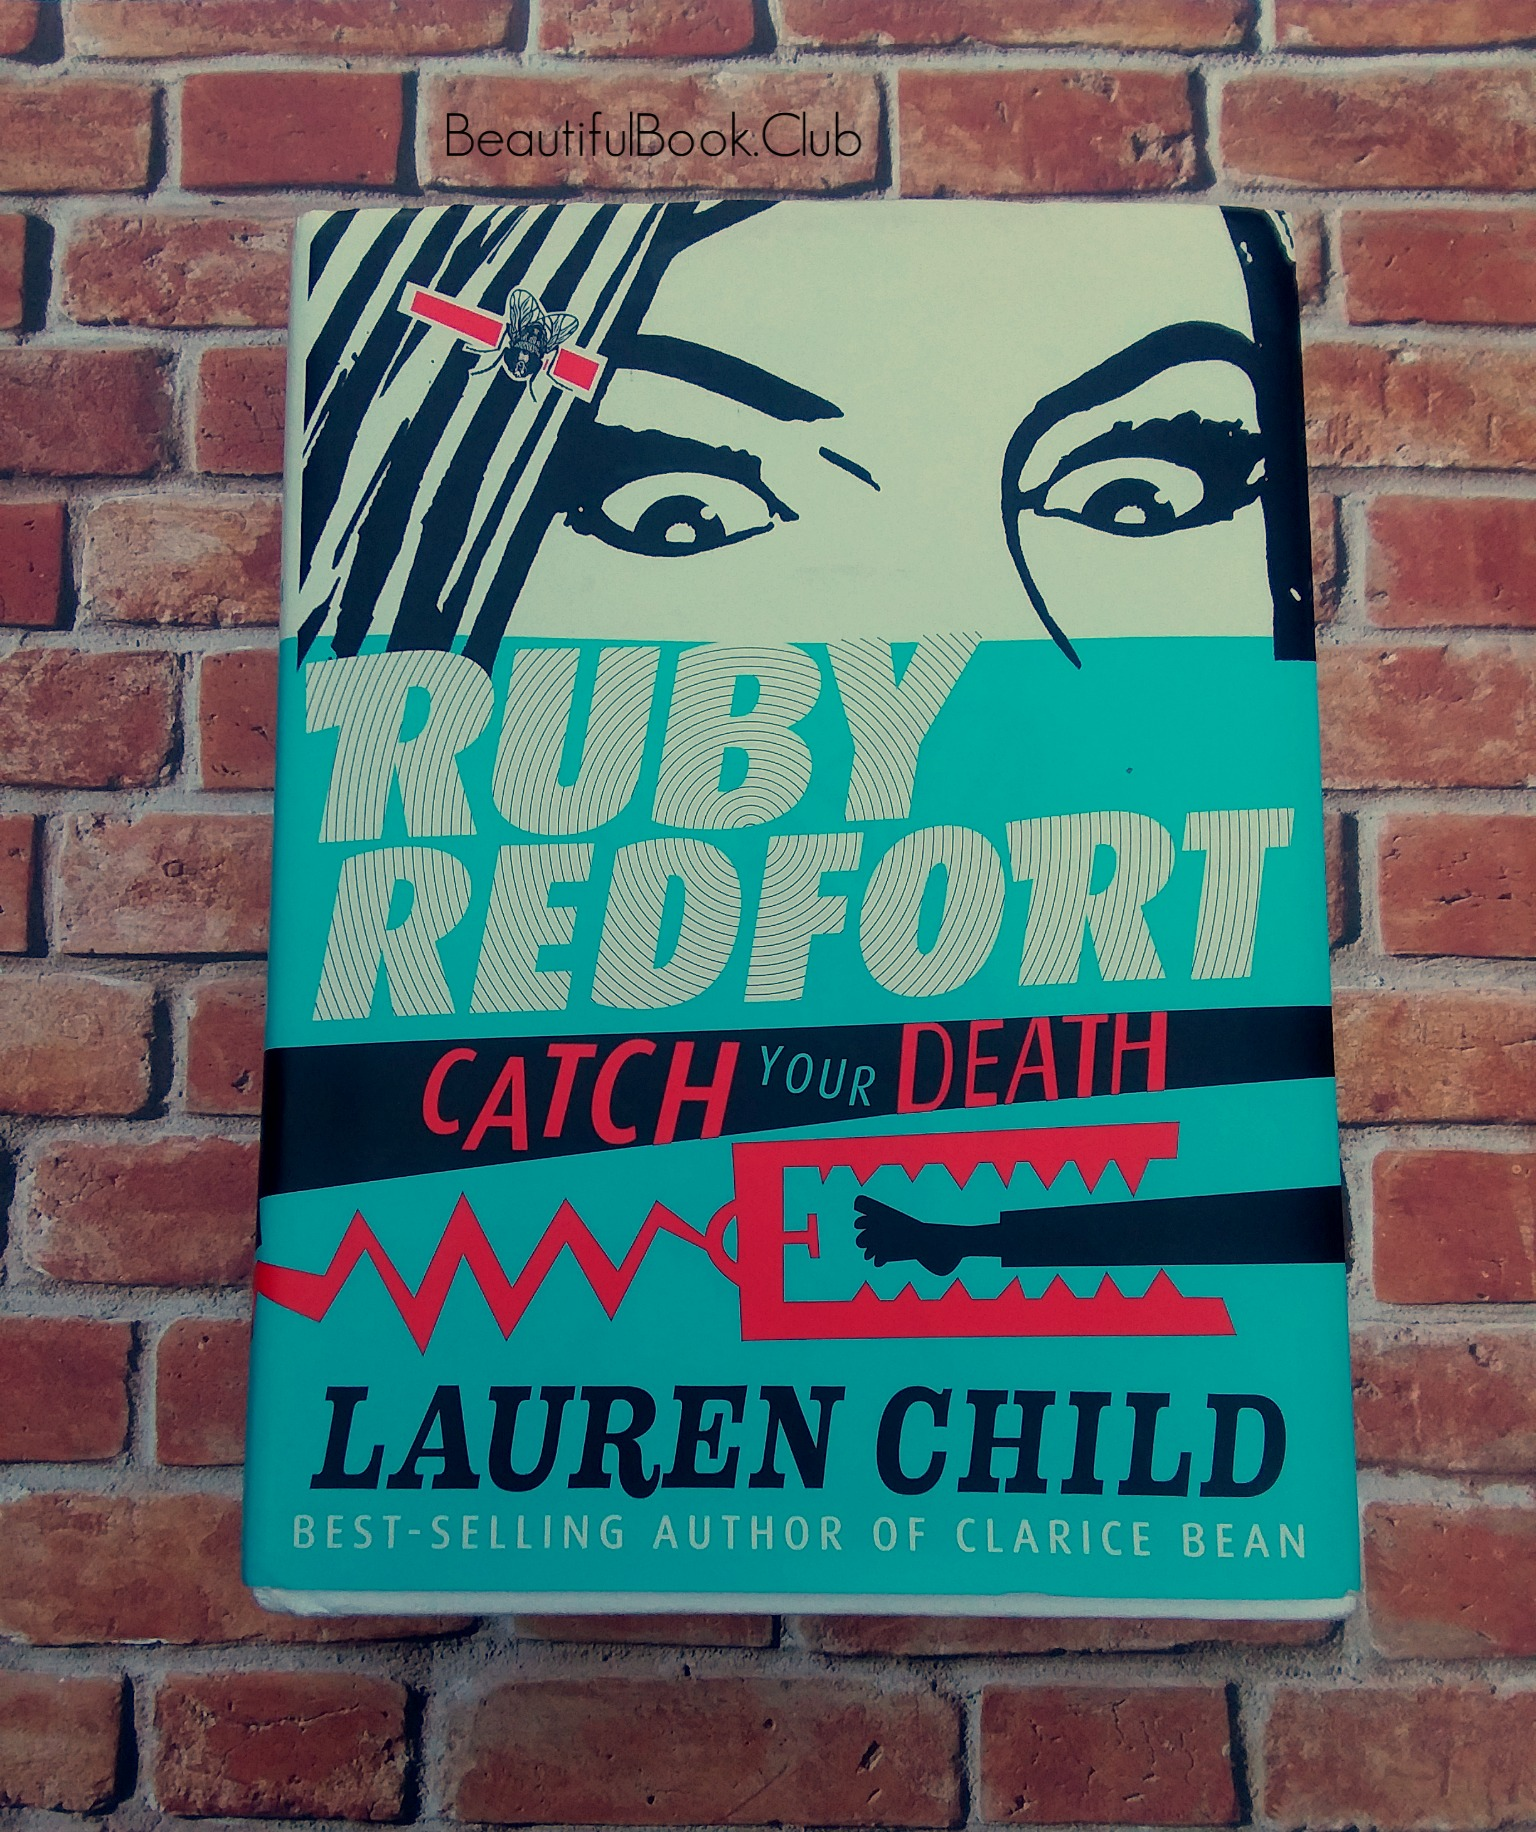 Catch Your Death by Lauren Child Ruby Redfort series book #3 front cover with bricks